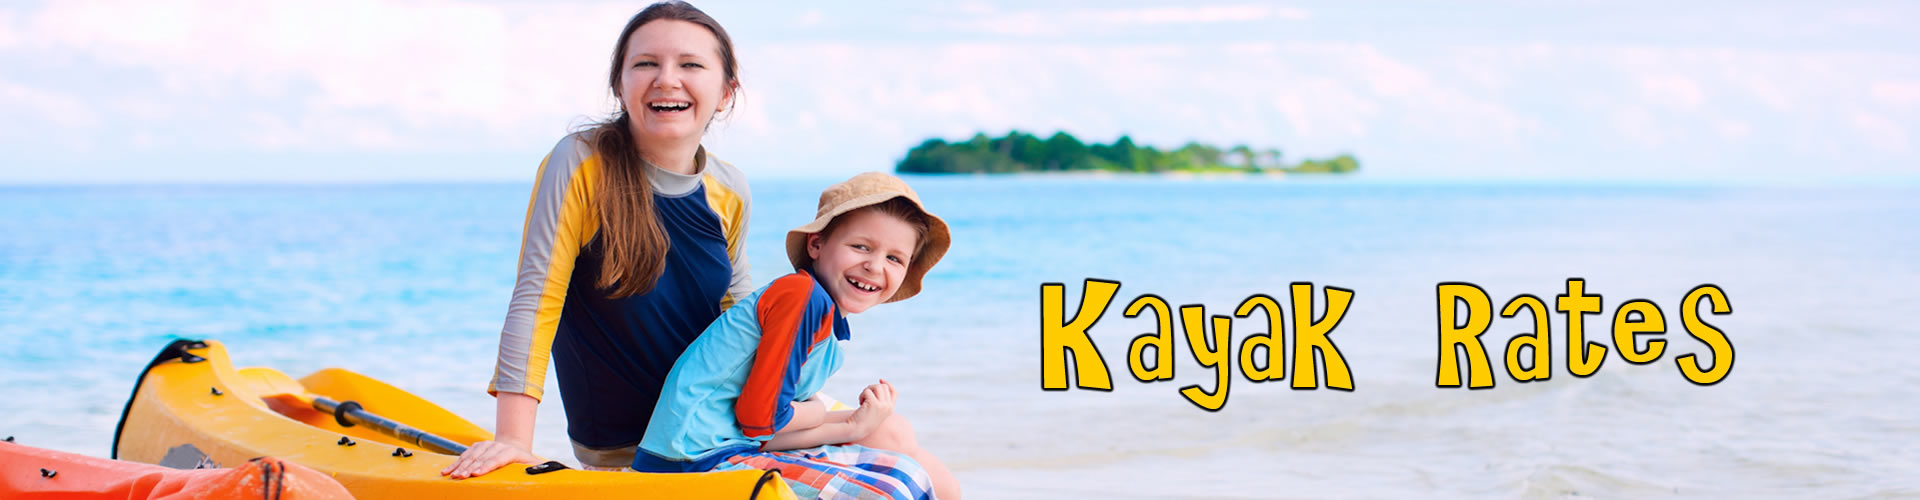 Kayak and Canoe Rental Rates, Tampa